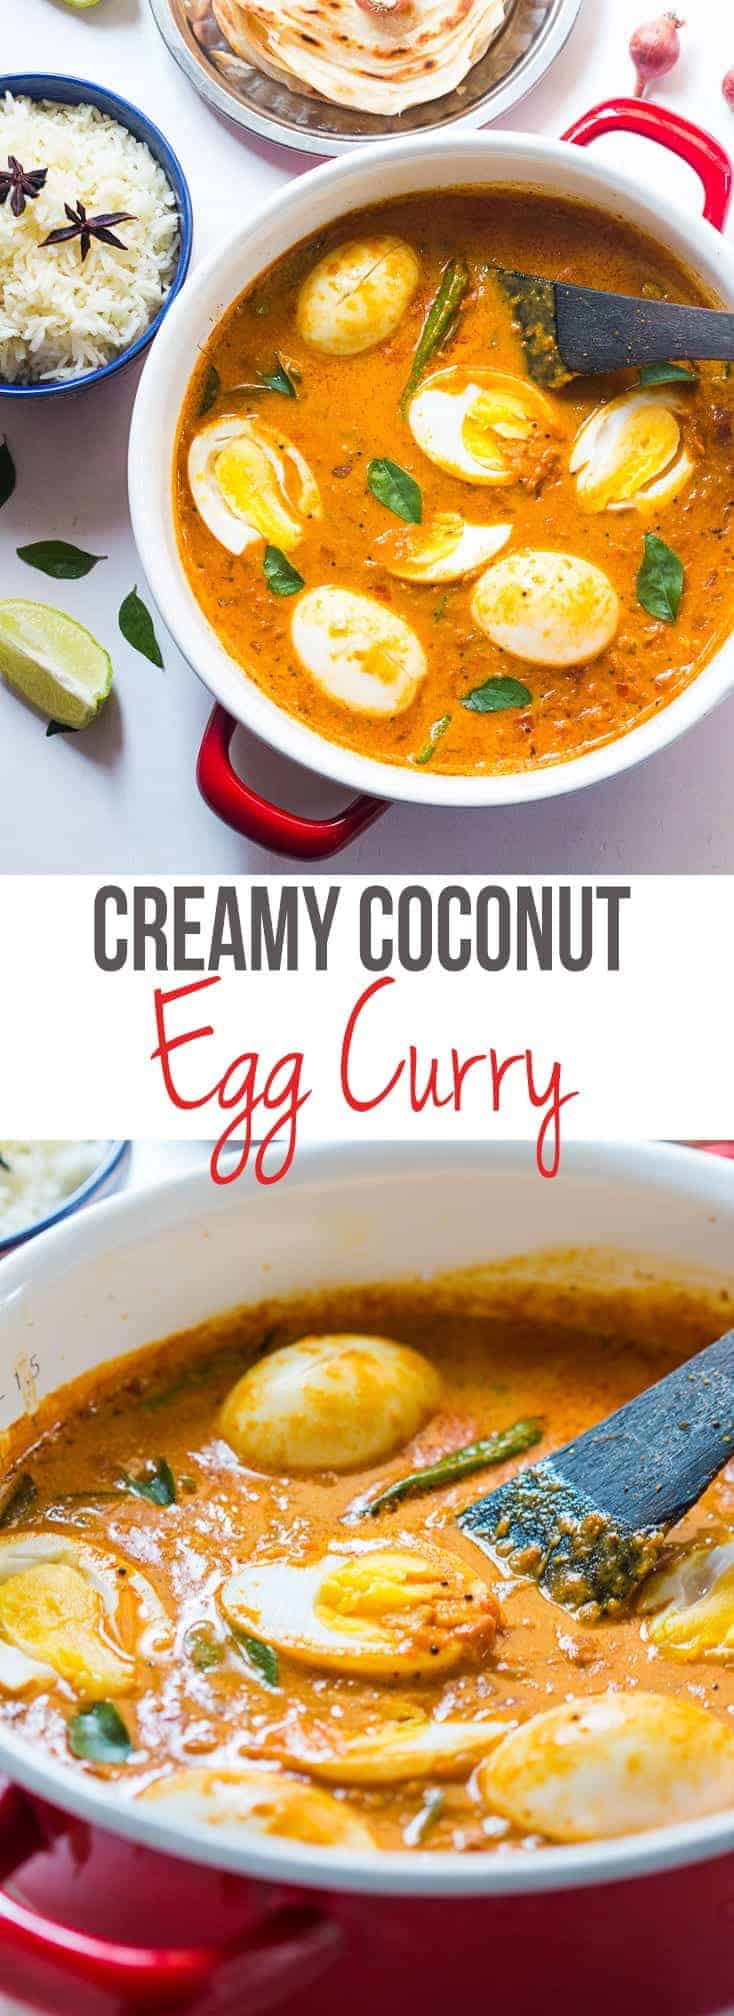 South Indian style Egg Curry is incredibly easy to make. A few spices, onions, tomatoes and coconut milk make this utterly satisfying and comforting egg curry recipe that tastes best with parathas (flatbread) and rice. If you keep the yolk gooey, it adds to the creaminess of the curry that is coconutty, spicy, tangy and all things yummy! #curry #recipe #indian #dinner #fast #easy #eggs